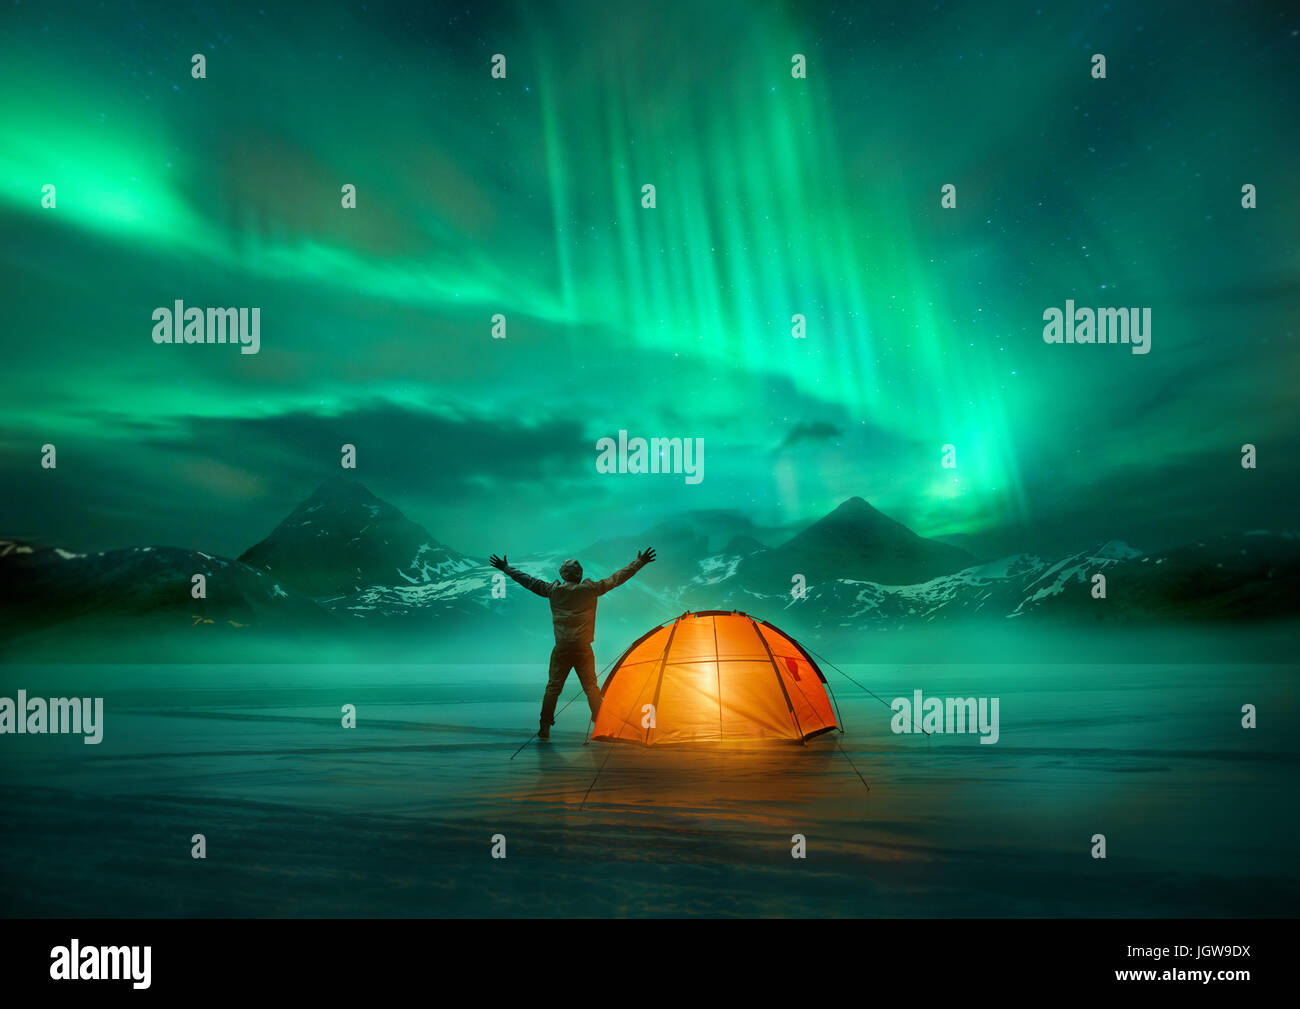 A man camping in wild northern mountains with an illuminated tent viewing a spectacular green northern lights aurora - Stock Image